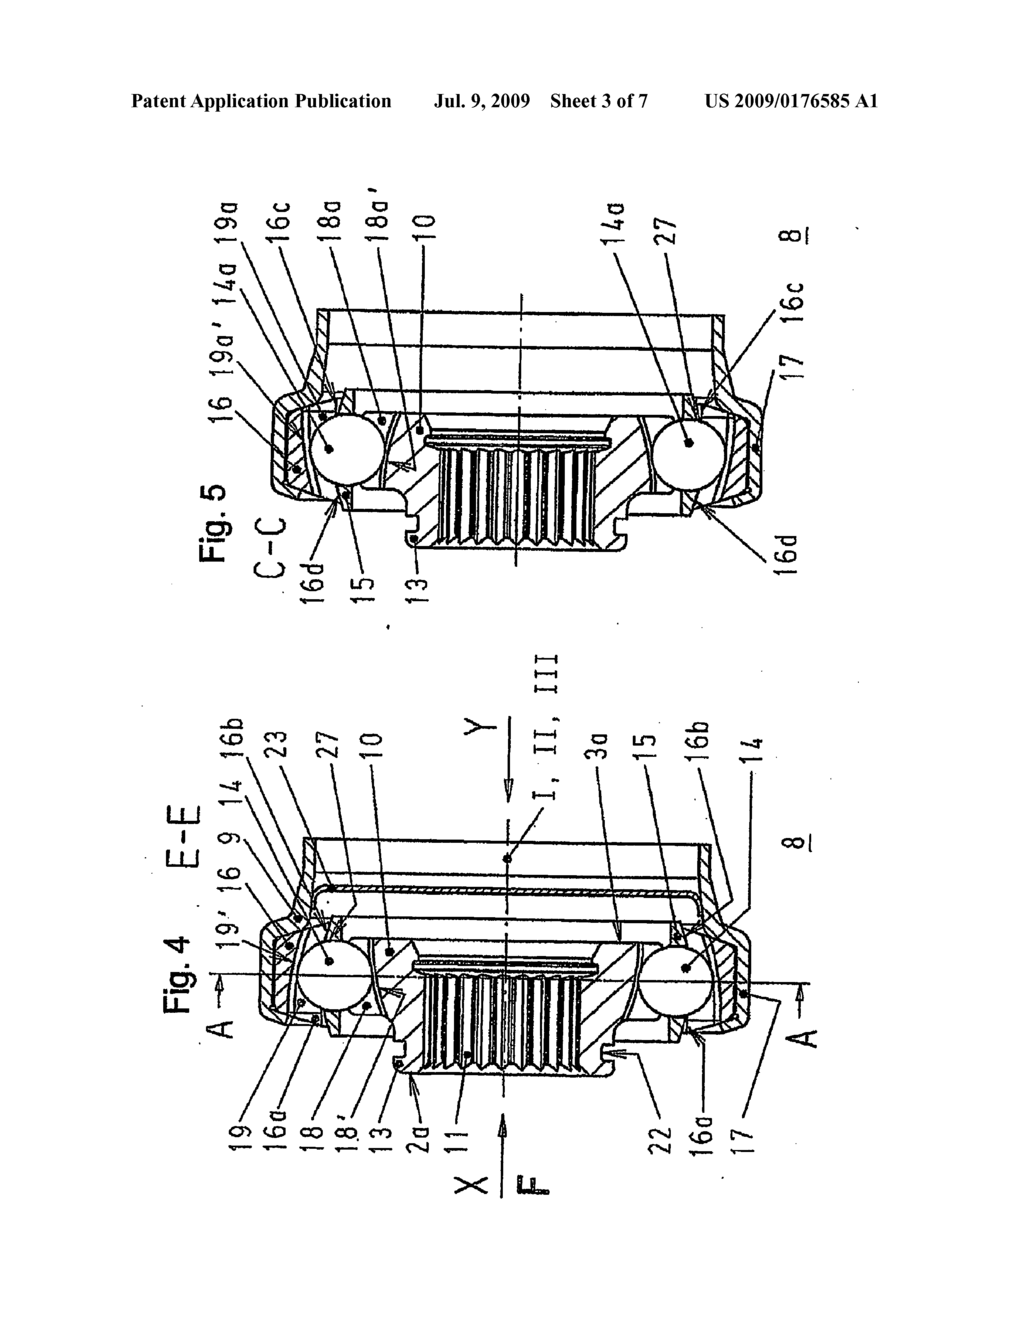 Torque Transmission Device Useful As A Fixed Constant Velocity Ball Joint Diagram For Drive Shafts And Method Producing Such Schematic